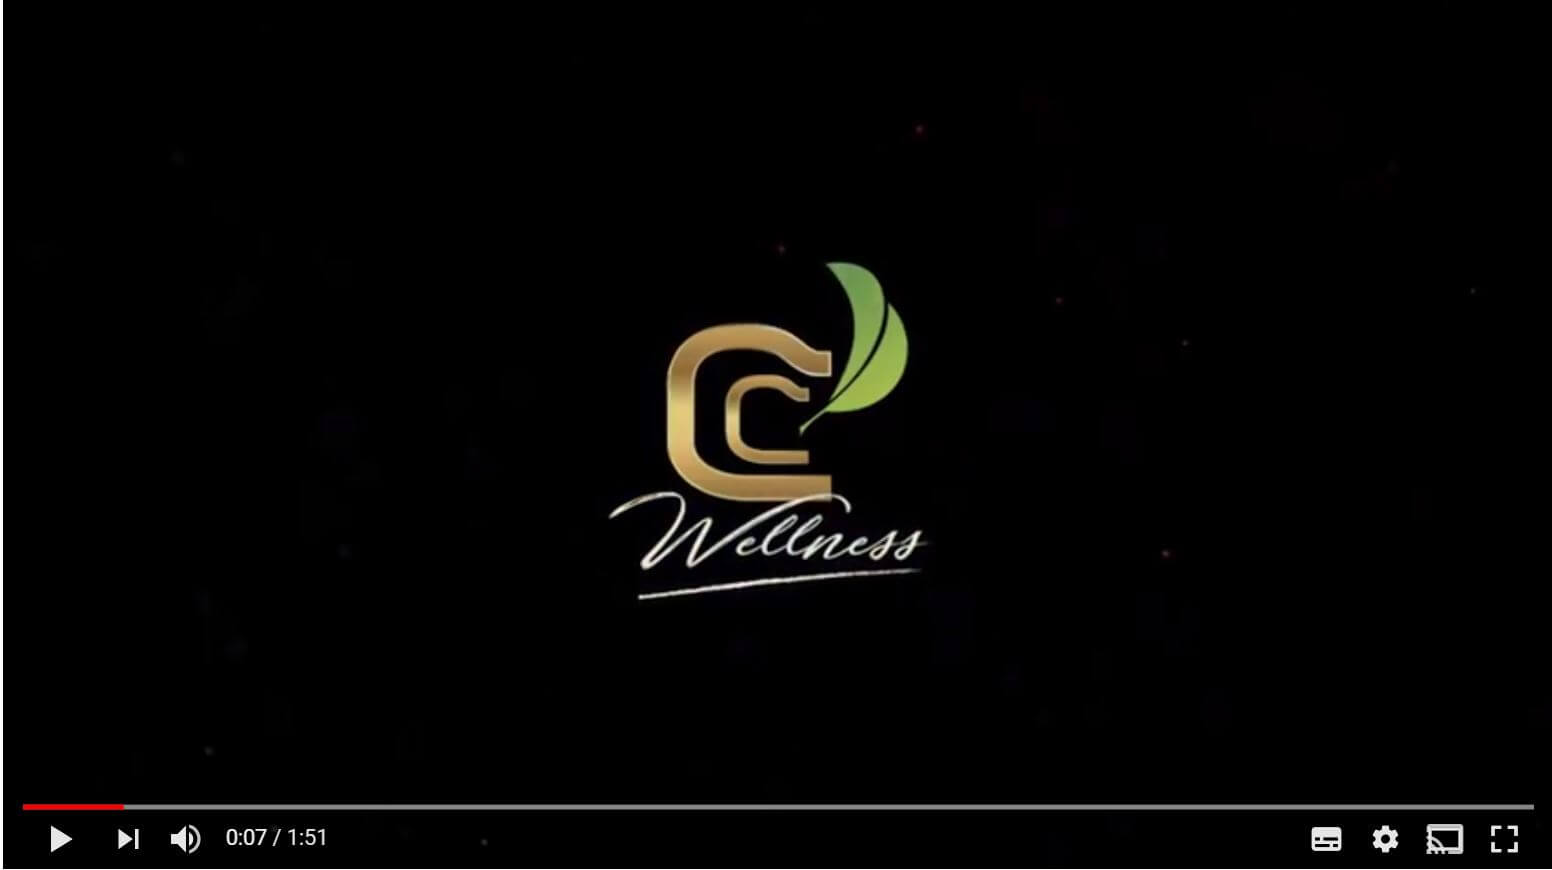 cc-wellness-vidéo-made-by-webqam